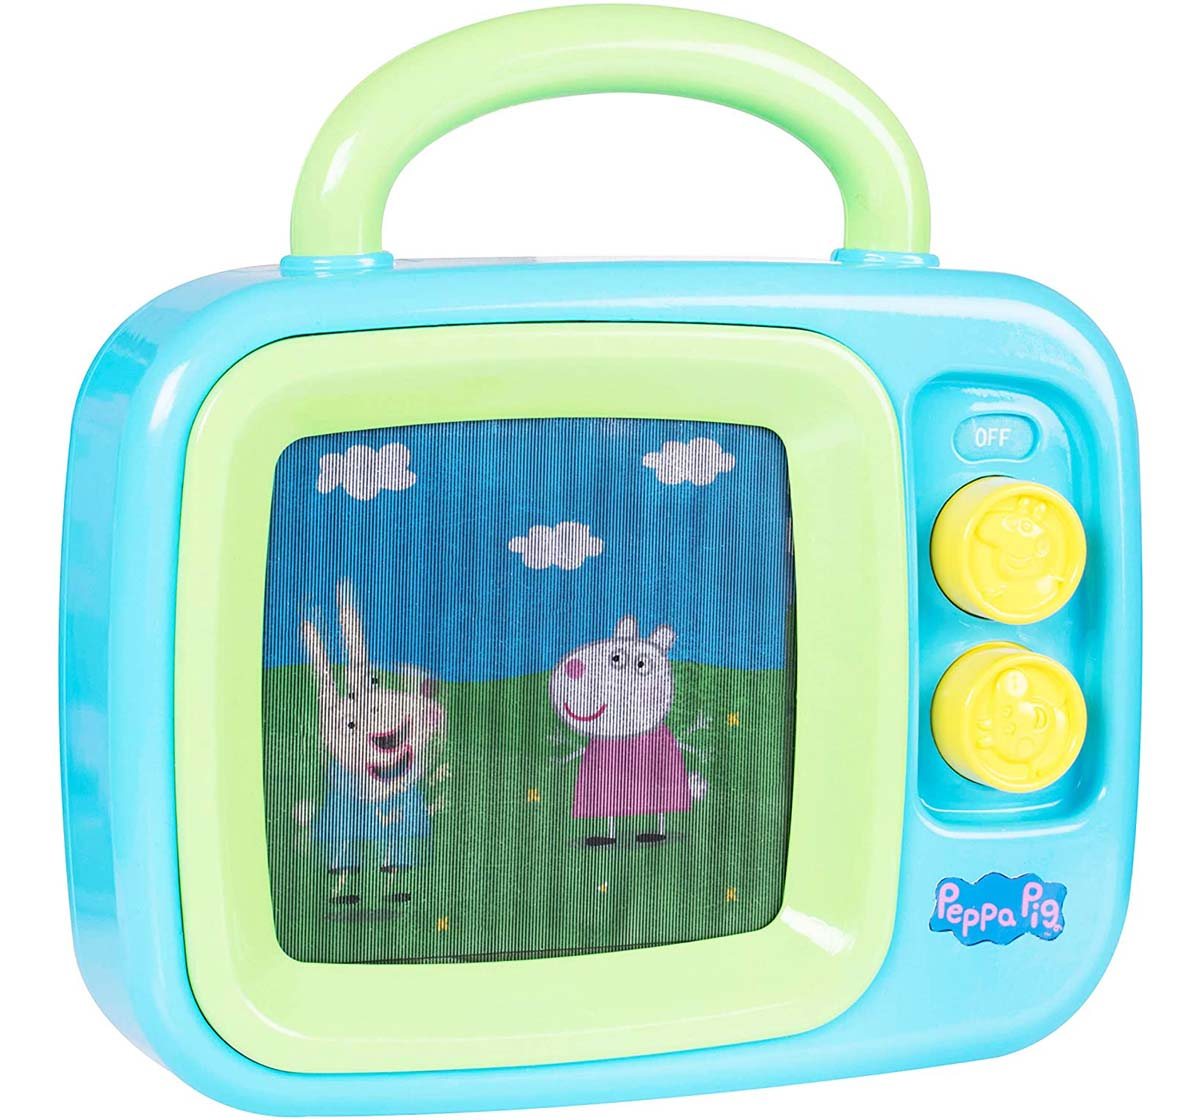 Peppa Pig | Peppa Pig My 1St Tv Roleplay sets for Kids age 18M +